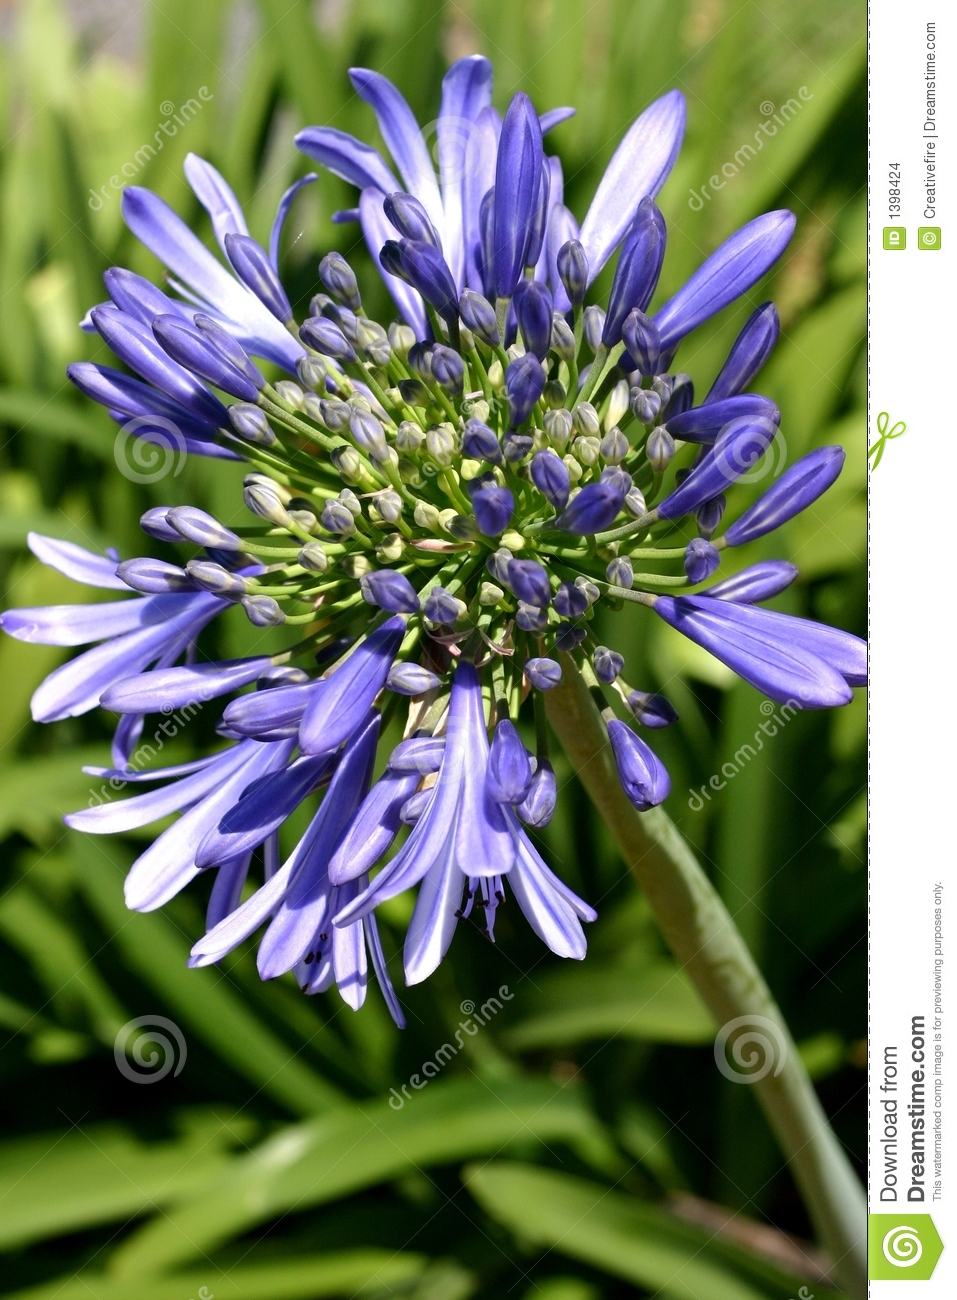 Download Agapanthus Flower stock photo. Image of scent, florets - 1398424